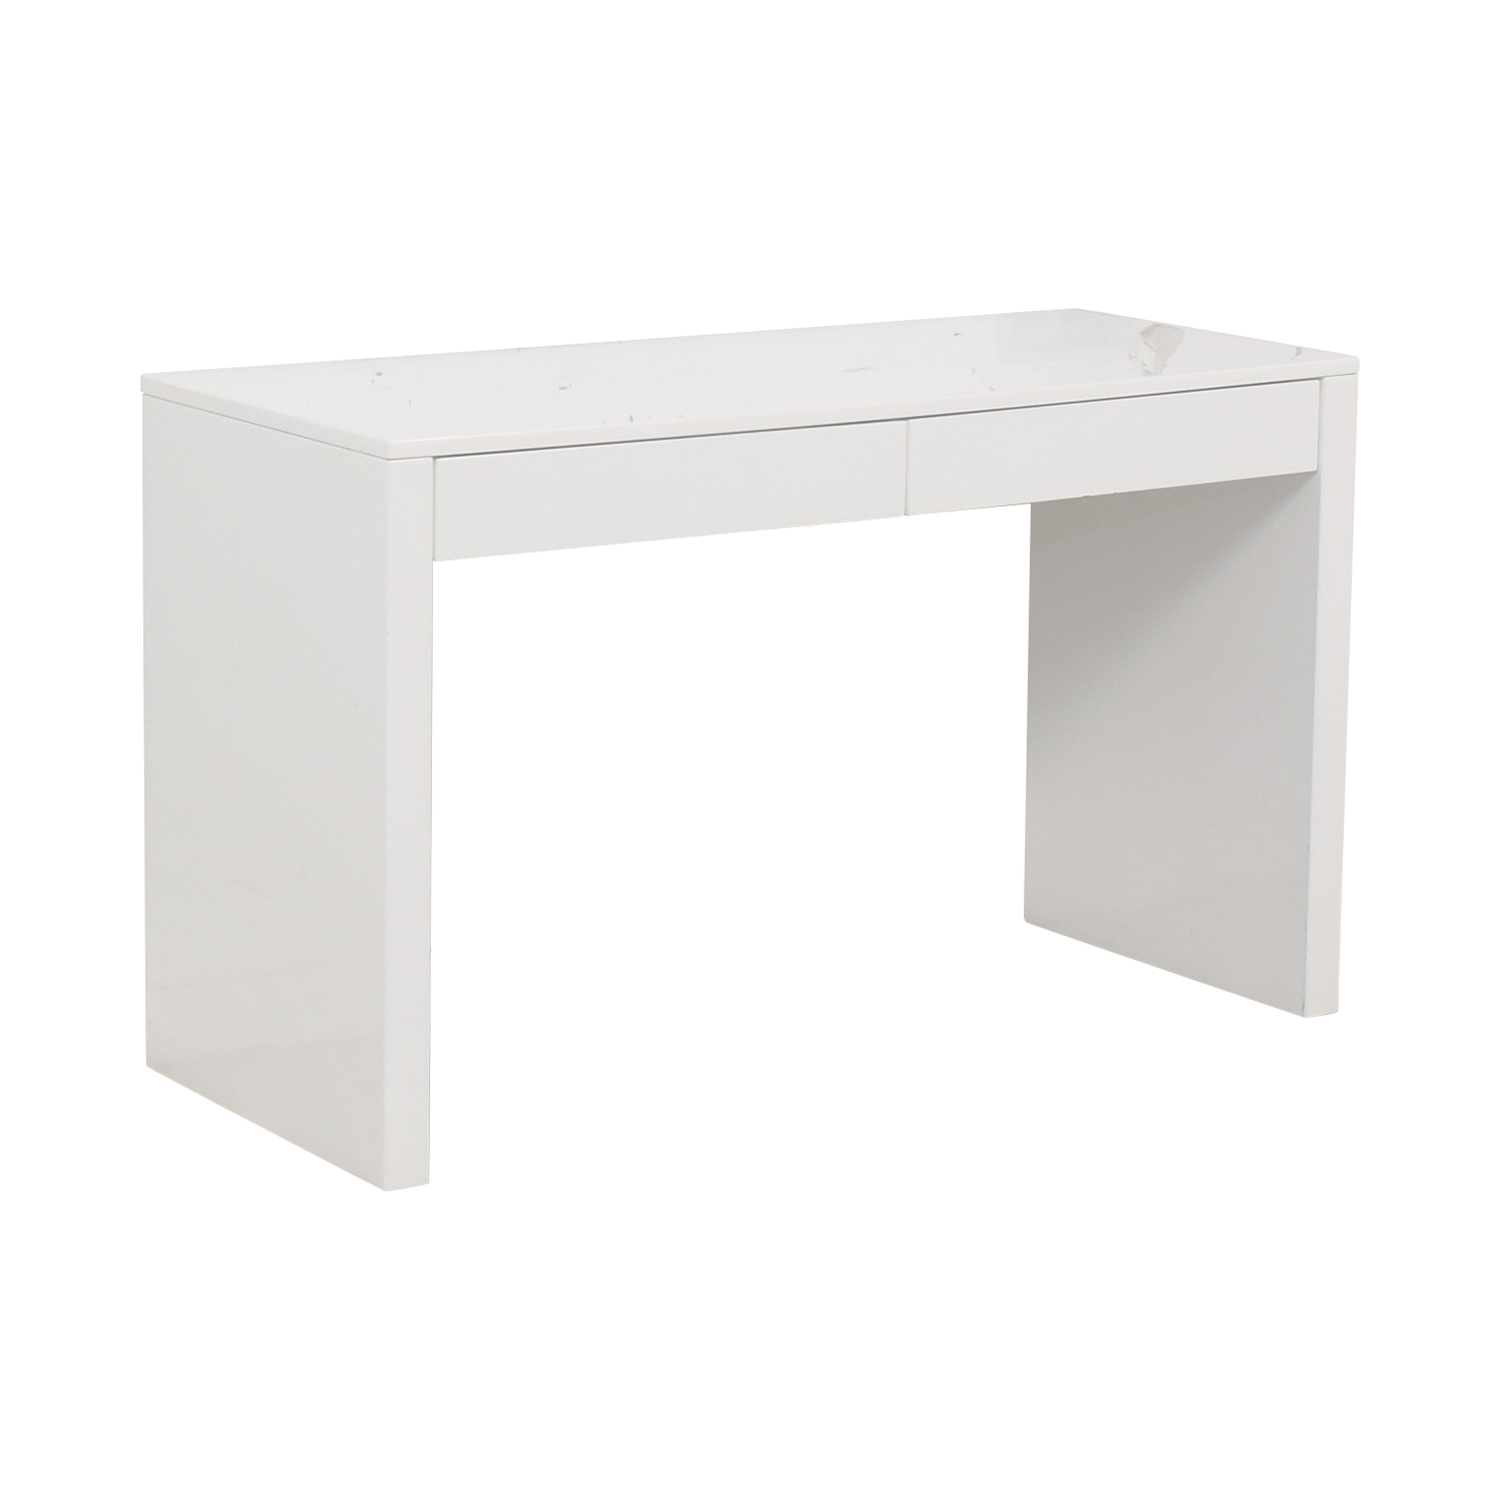 shop CB2 CB2 Runway White Lacquer Two-Drawer Desk online